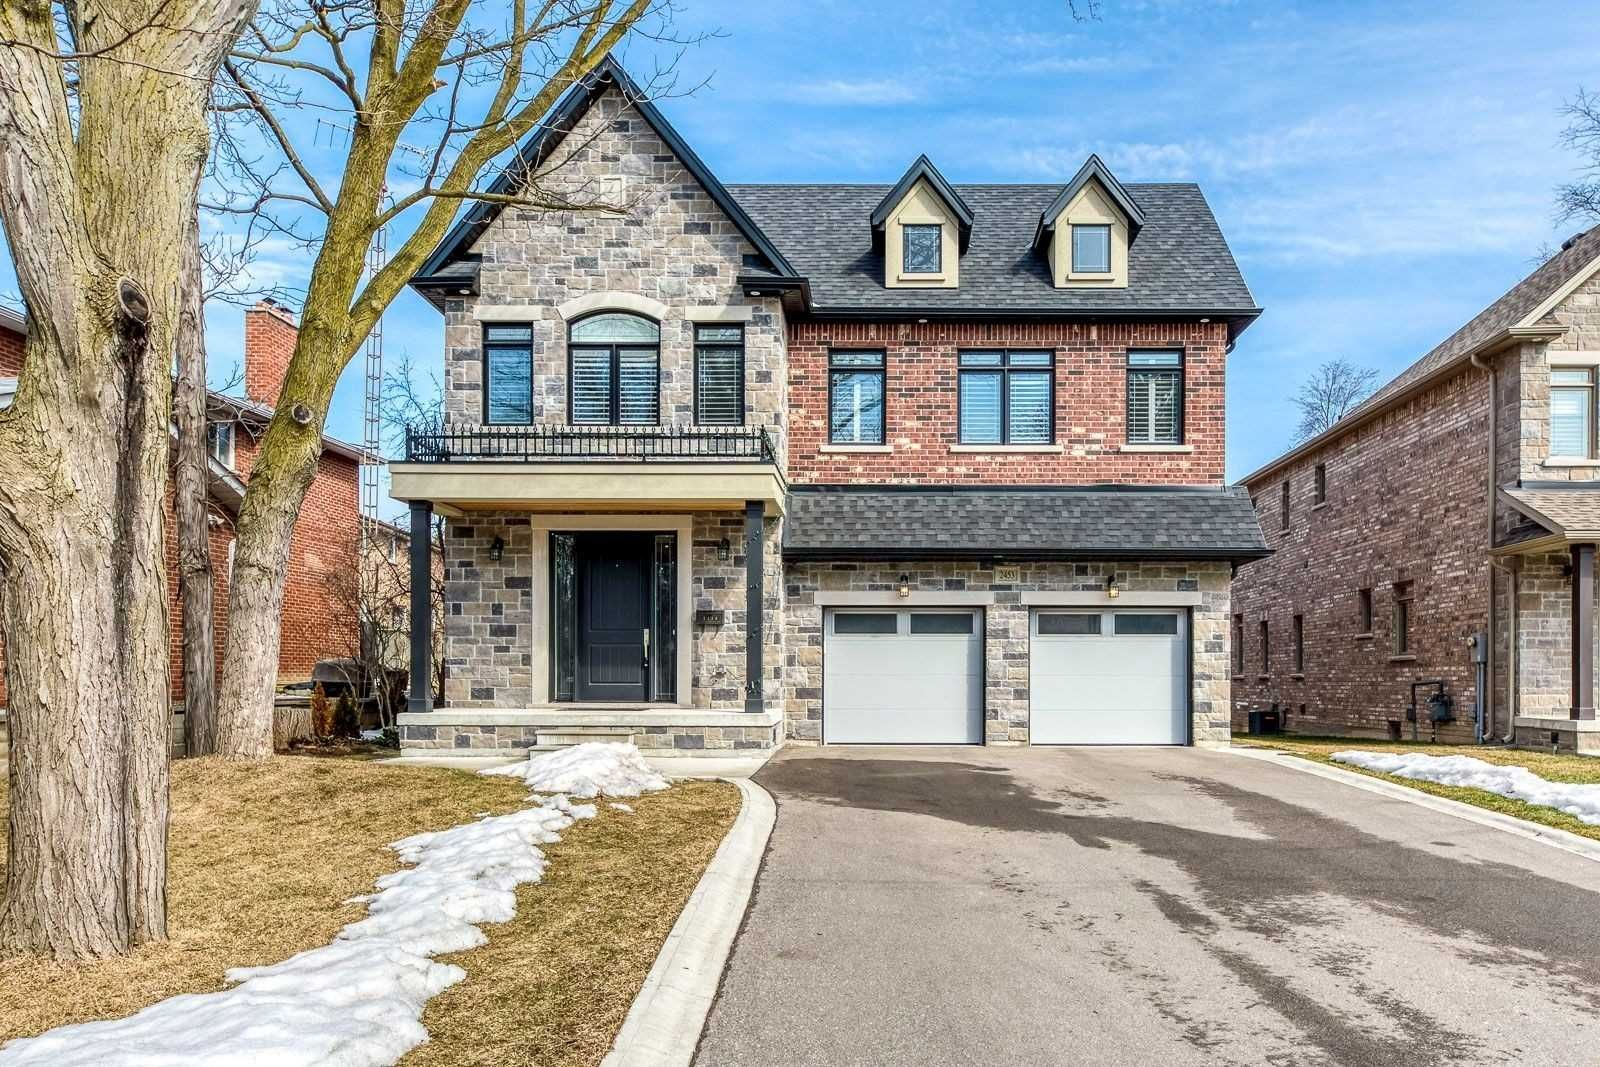 Main Photo: 2453 Old Carriage Road in Mississauga: Erindale House (2-Storey) for sale : MLS®# W5142877